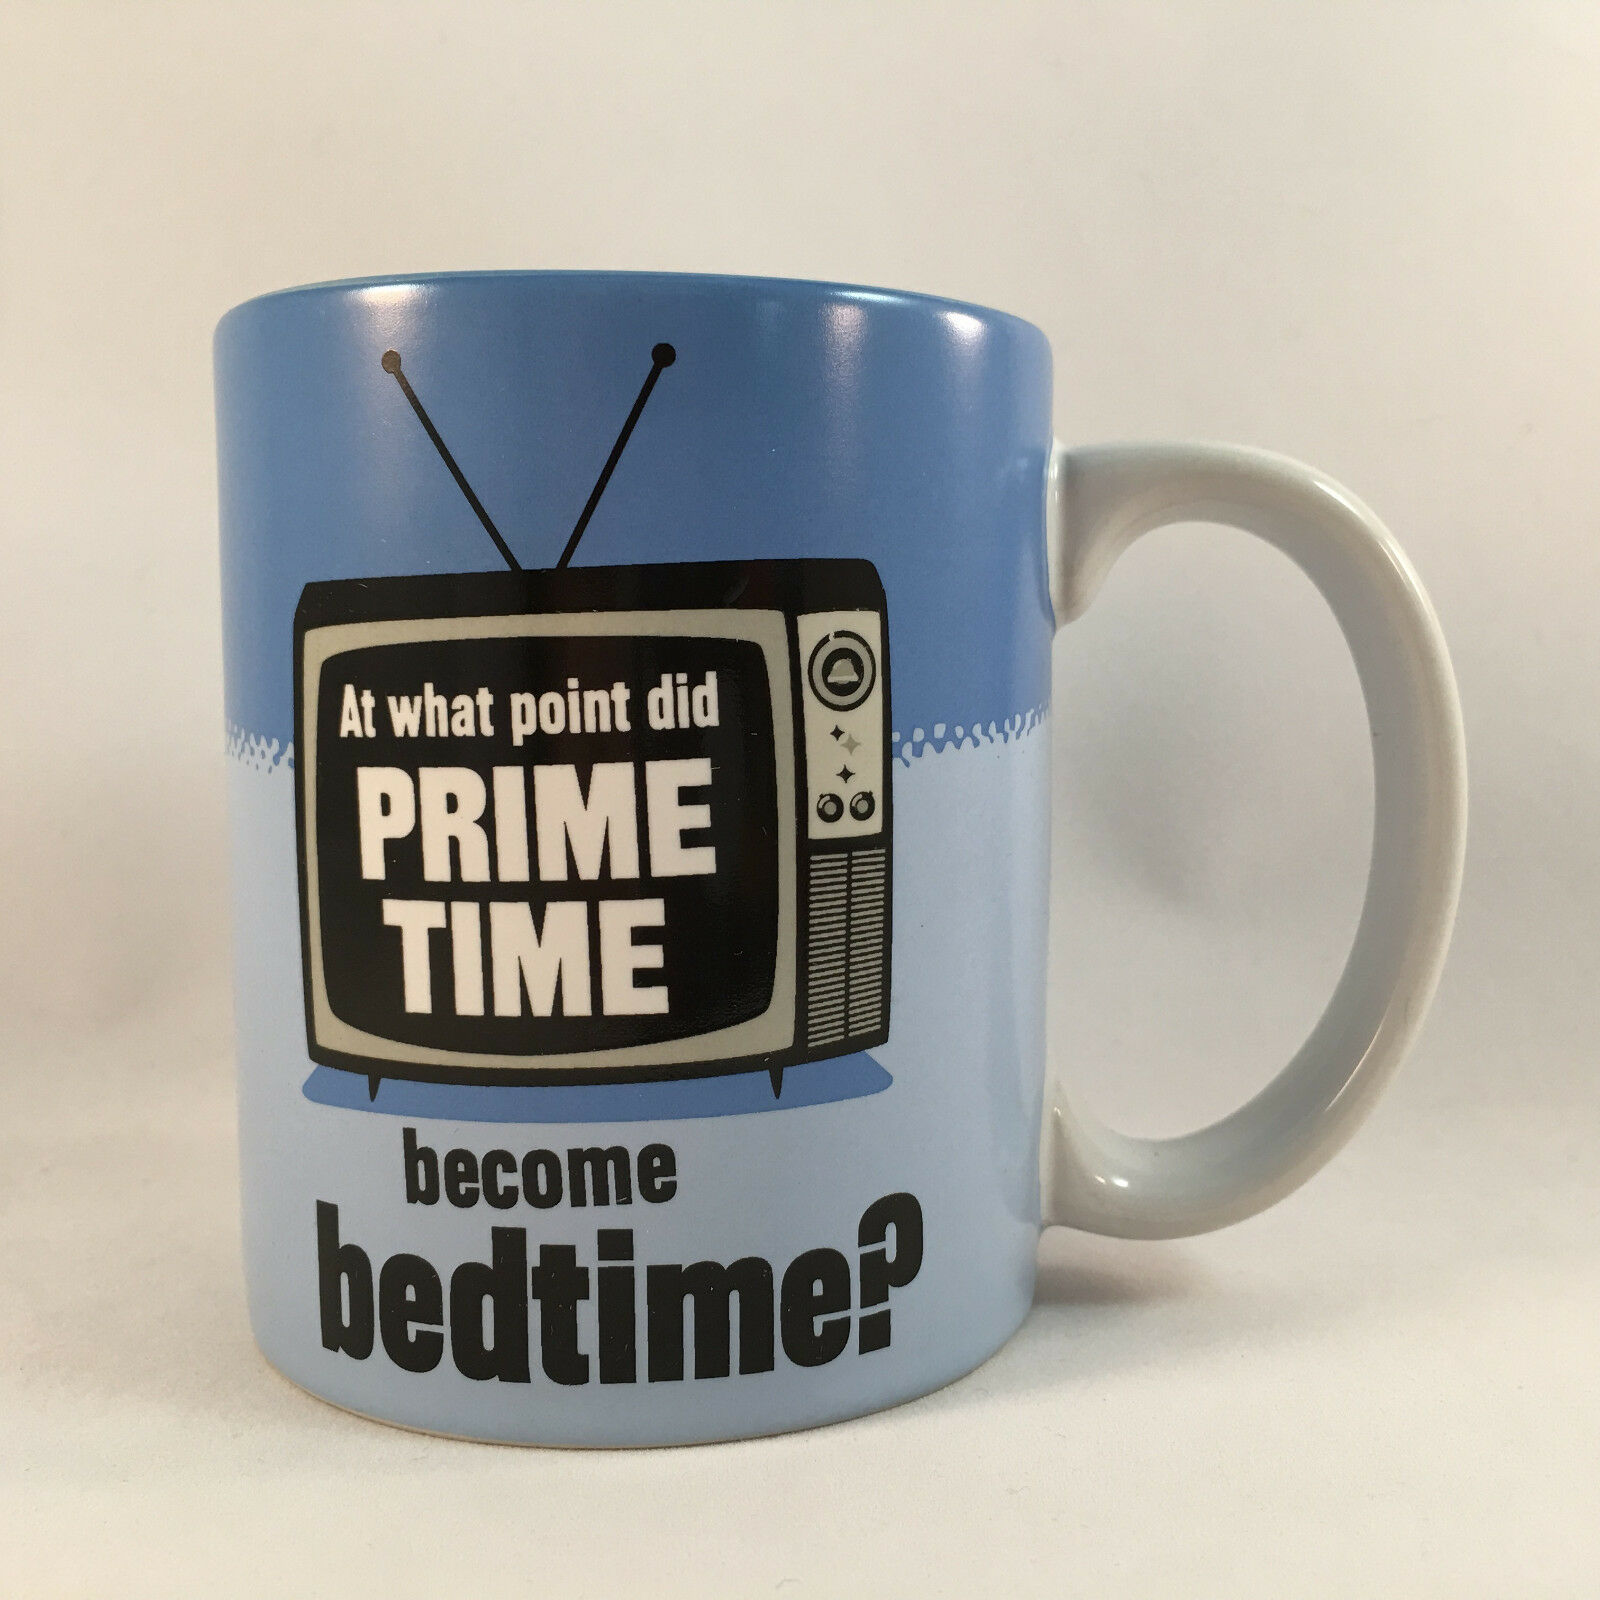 Primary image for Hallmark Coffee Mug At What Point Did Prime Time Become Bedtime?